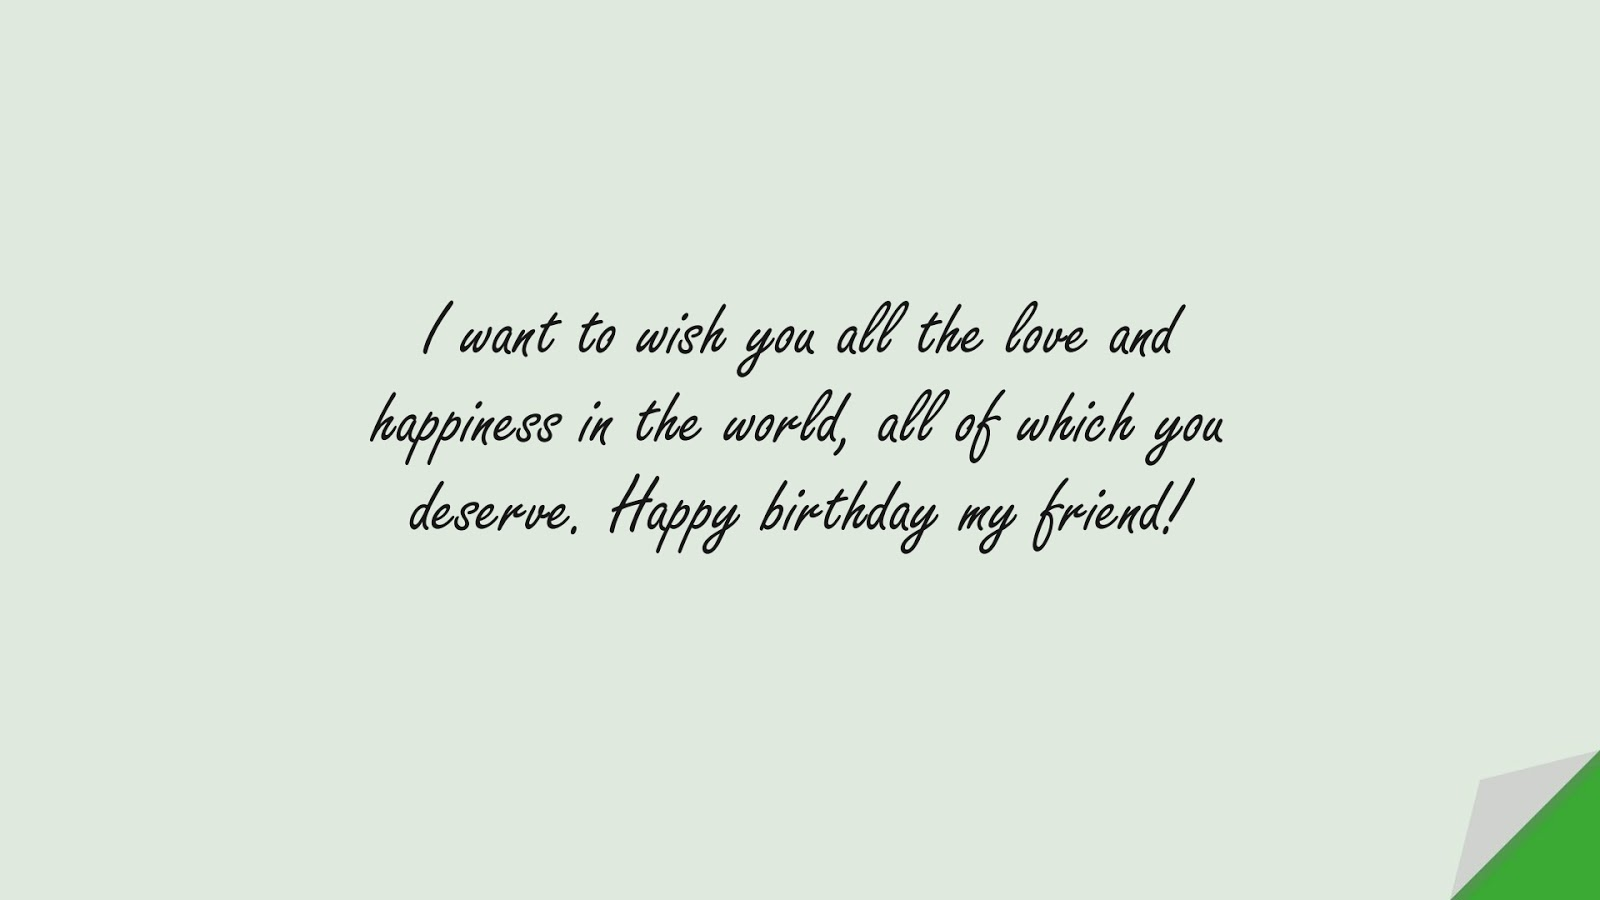 I want to wish you all the love and happiness in the world, all of which you deserve. Happy birthday my friend!FALSE